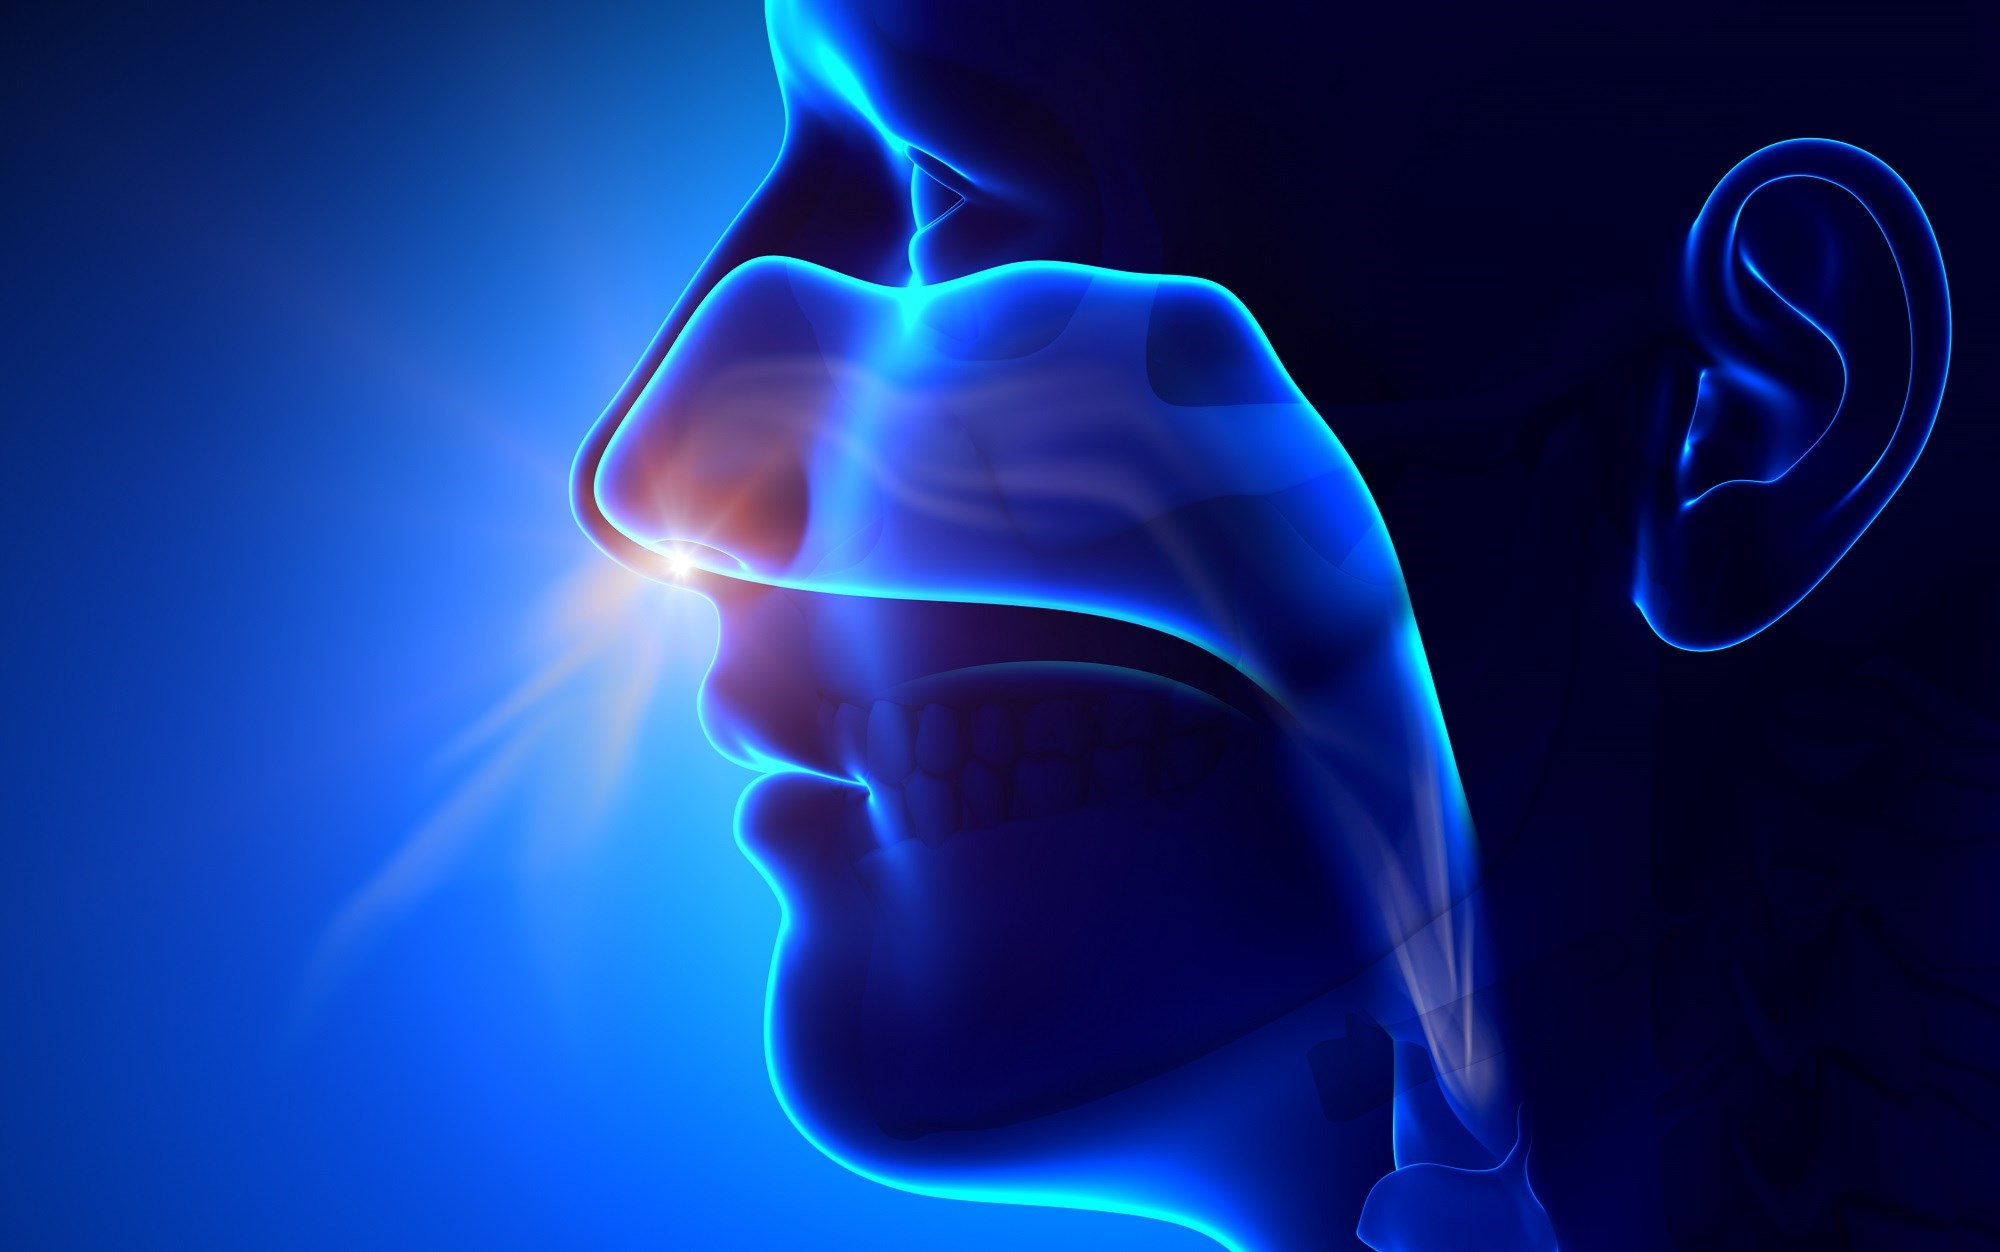 Nasal Microbiota Changes Linked to Obstructive Sleep Apnea, Inflammation